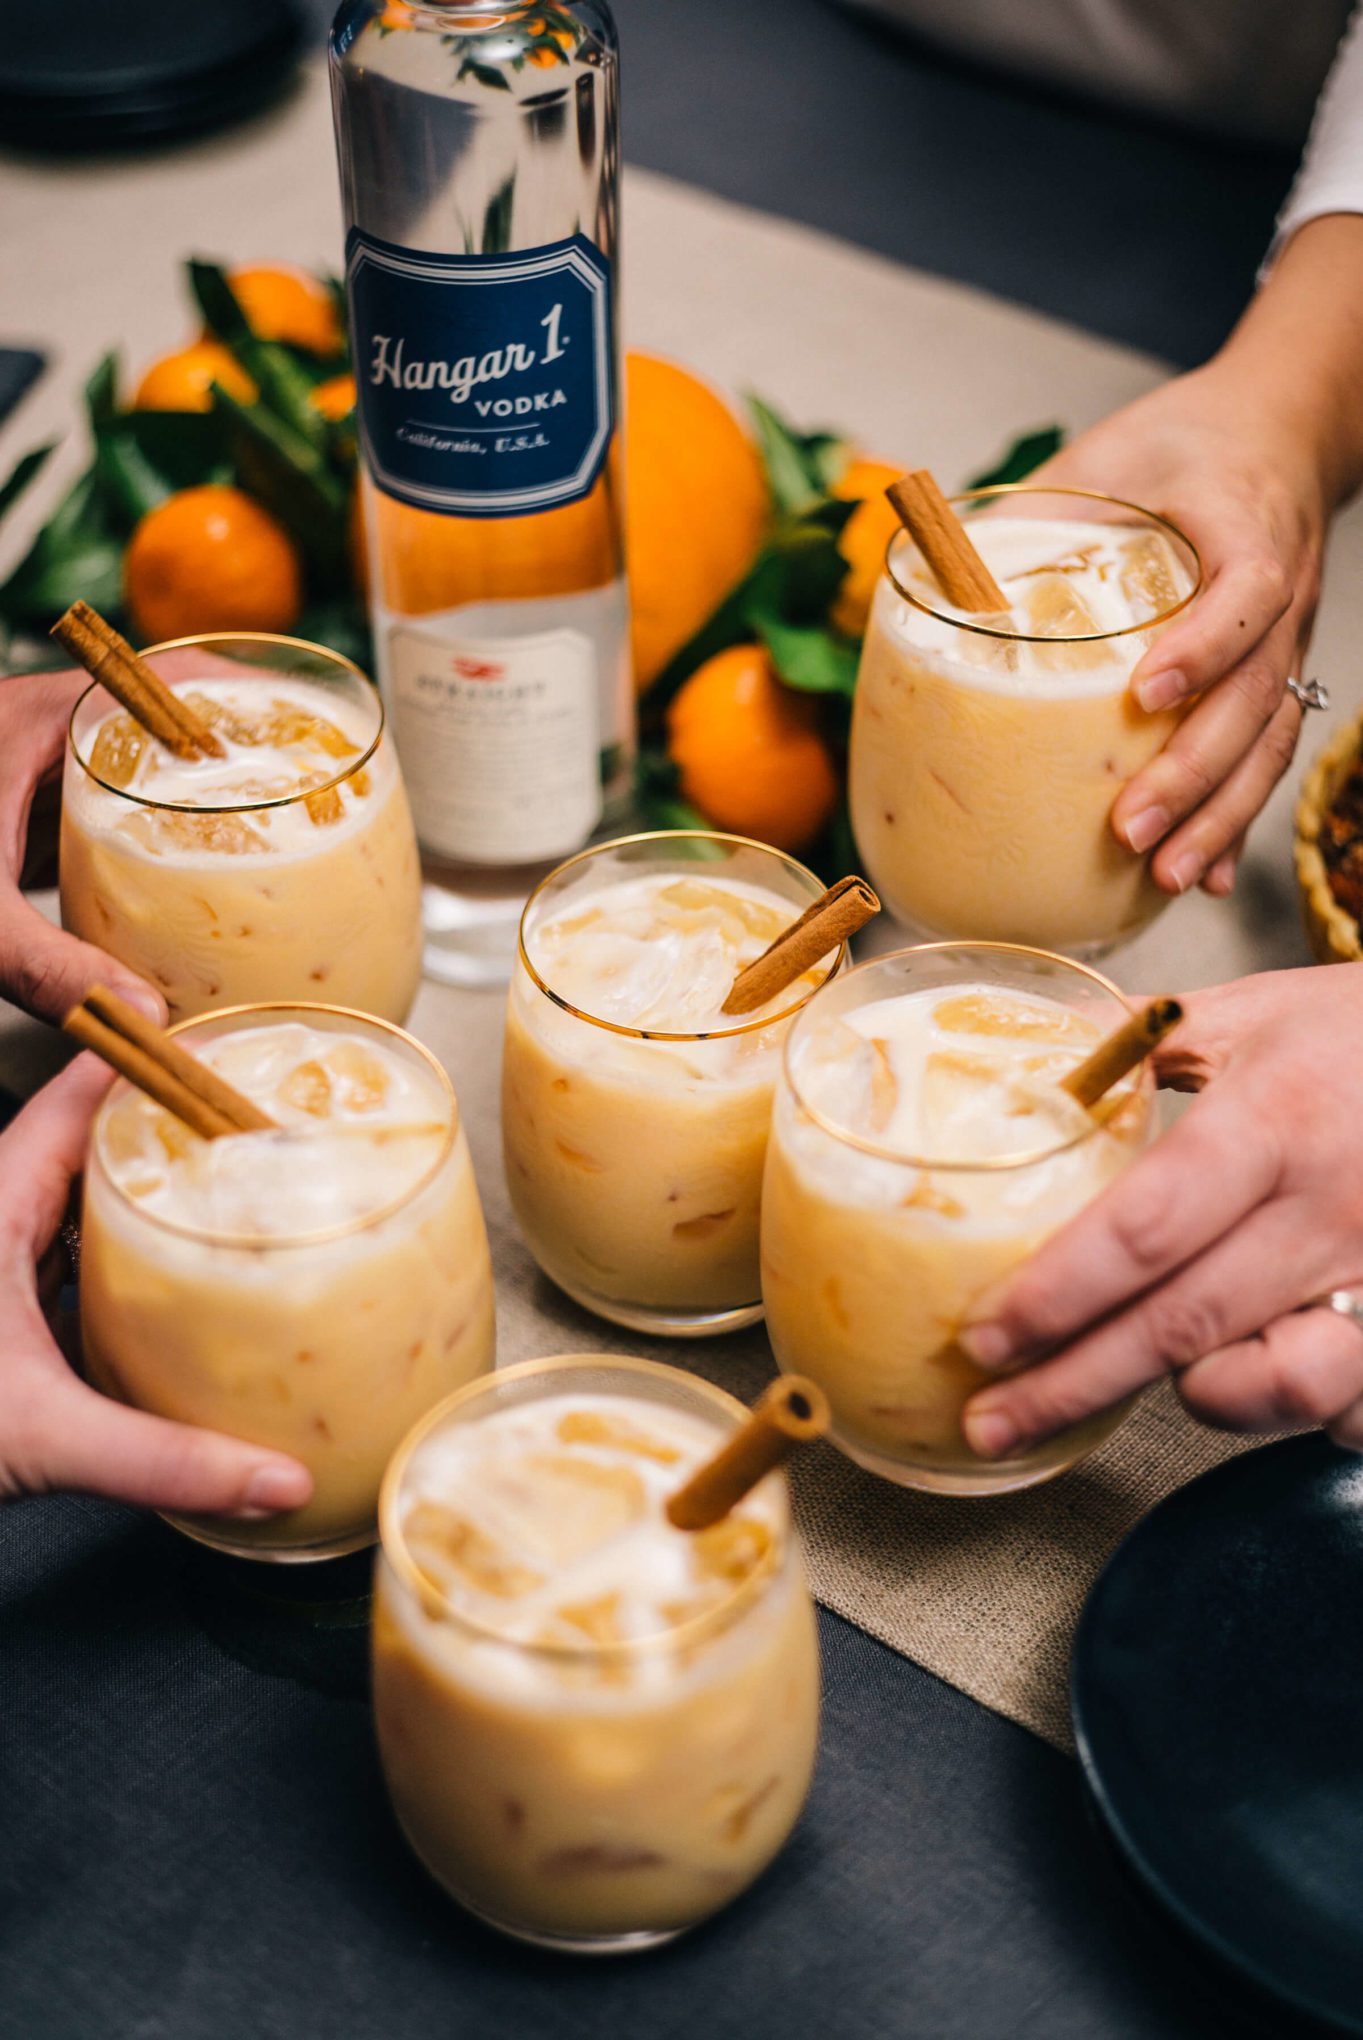 Glasses filled with Pumpkin Spice Cocktails, garnished with cinnamon sticks, and made with with Hangar 1 Vodka and horchata liquor made by The Taste SF